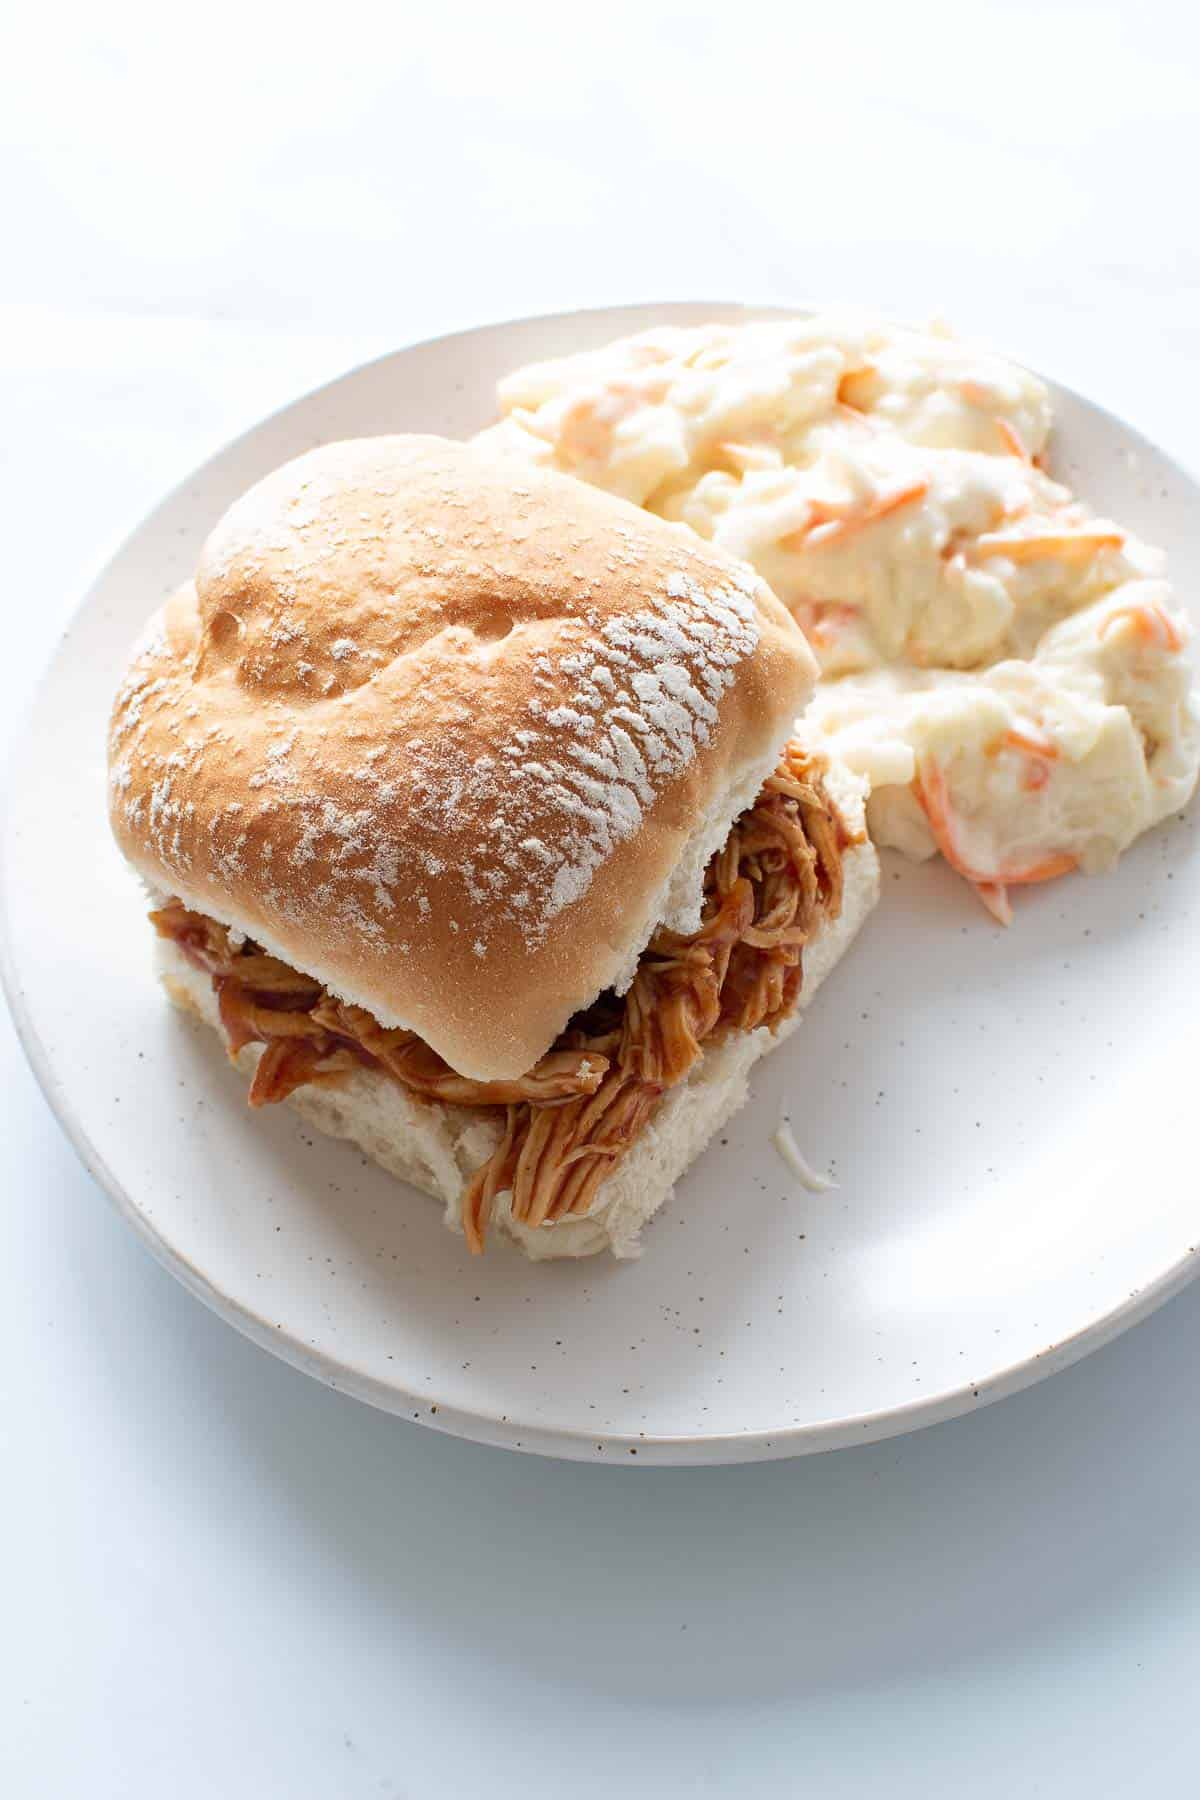 Pulled BBQ chicken sandwich with coleslaw.